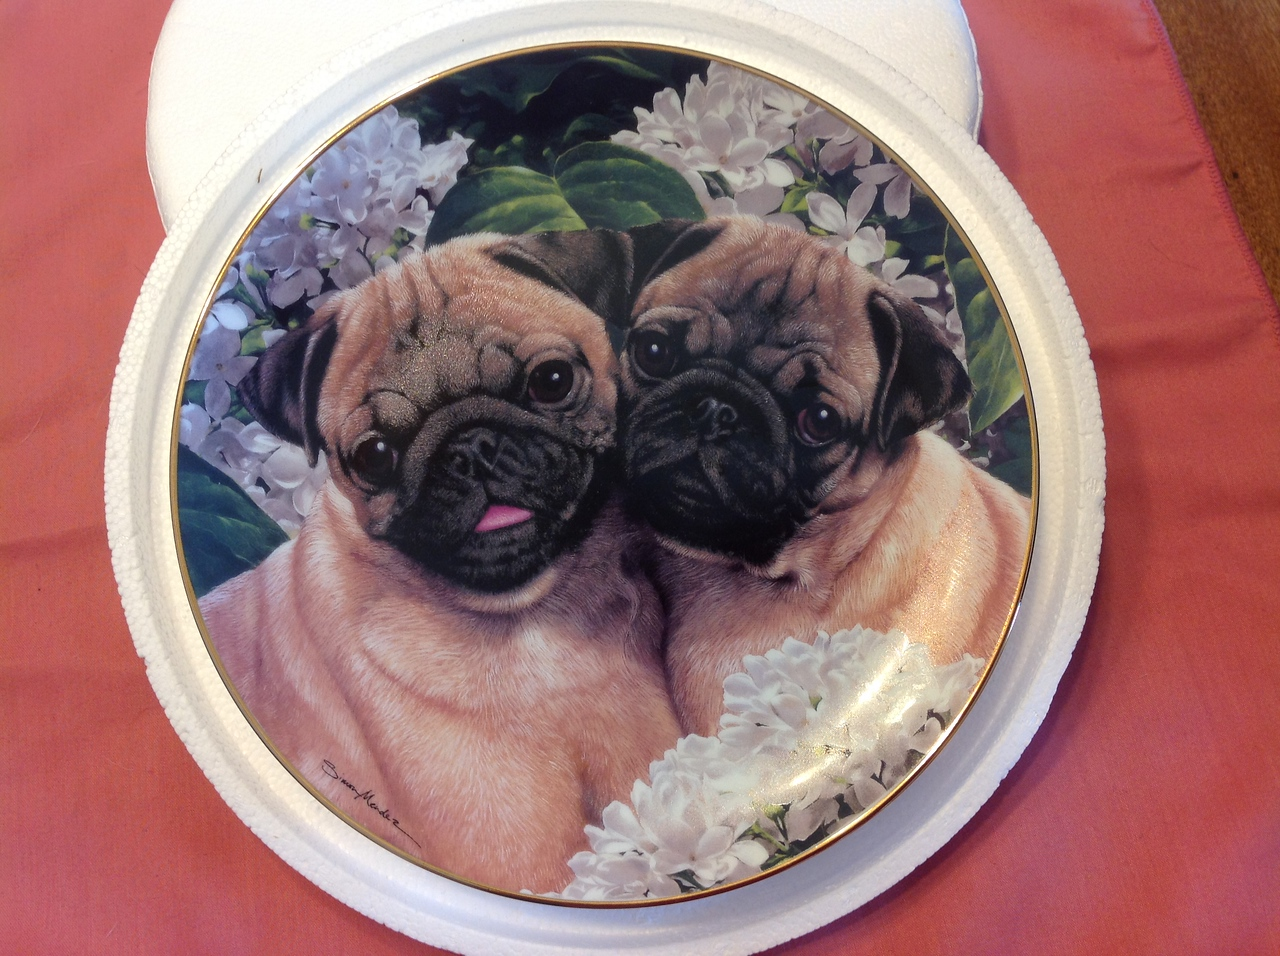 """Danbury Mint Plate """"Pug Love"""" by Simon Mendez in the Pugs collection. Plate #C6430<br /> <br /> Winner pays shipping<br /> <br /> Starting bid $10"""